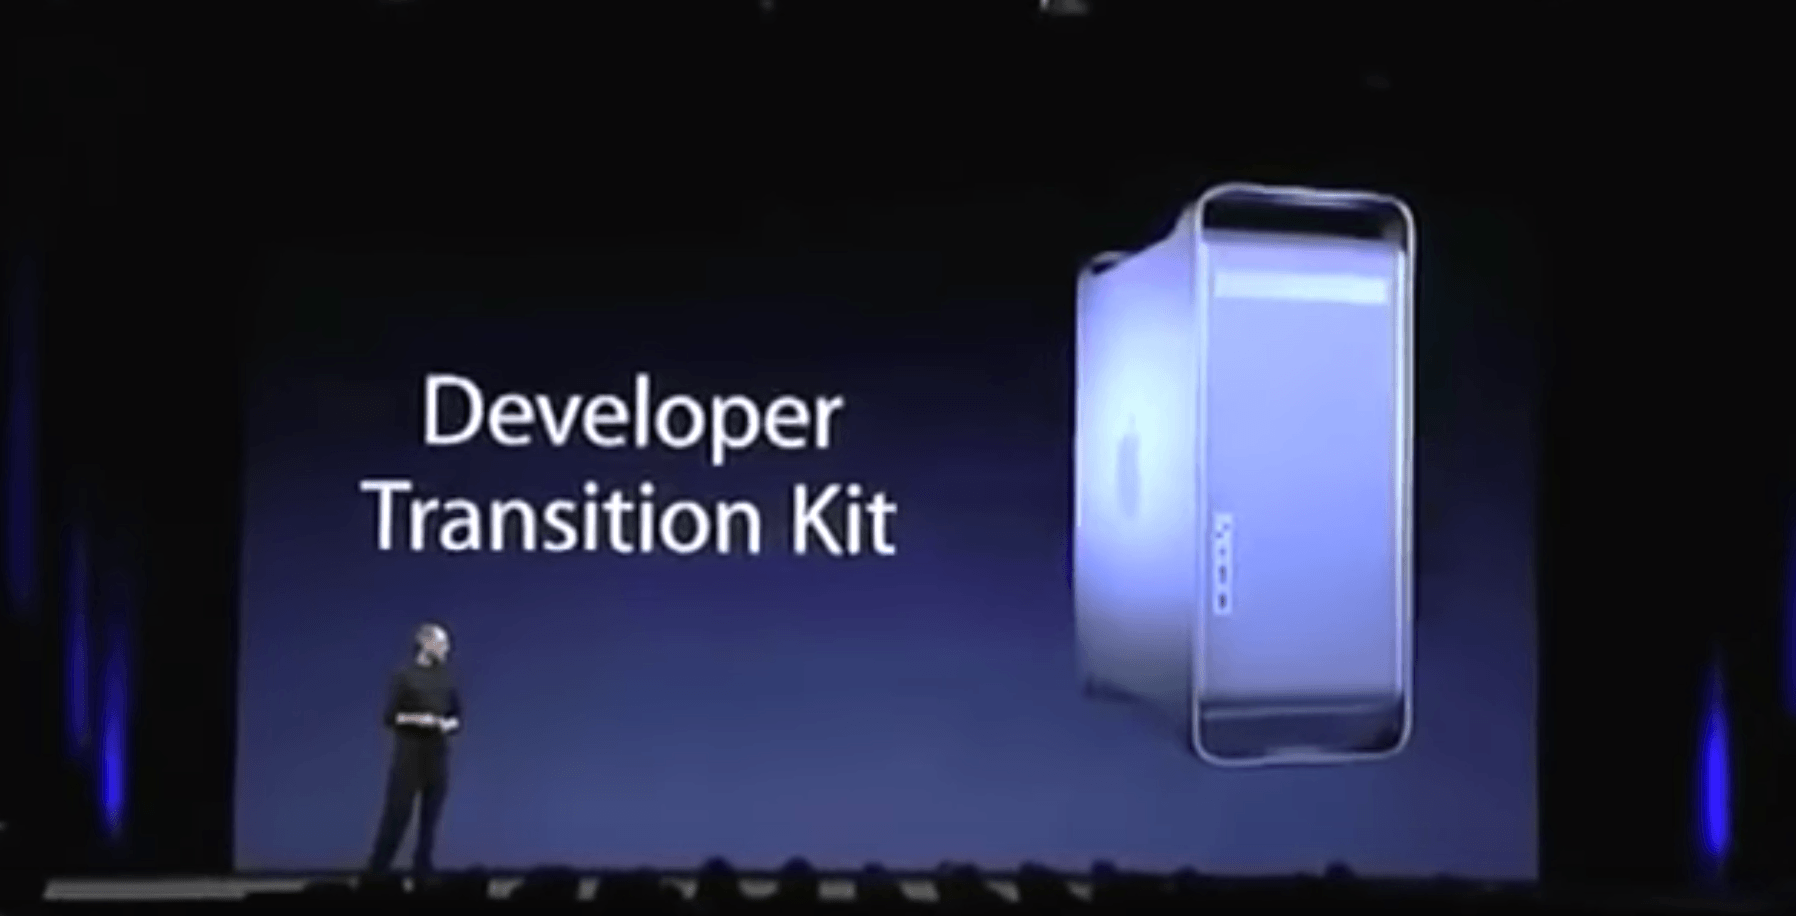 """This Is Not a Product"": The Apple Developer Transition Kit"